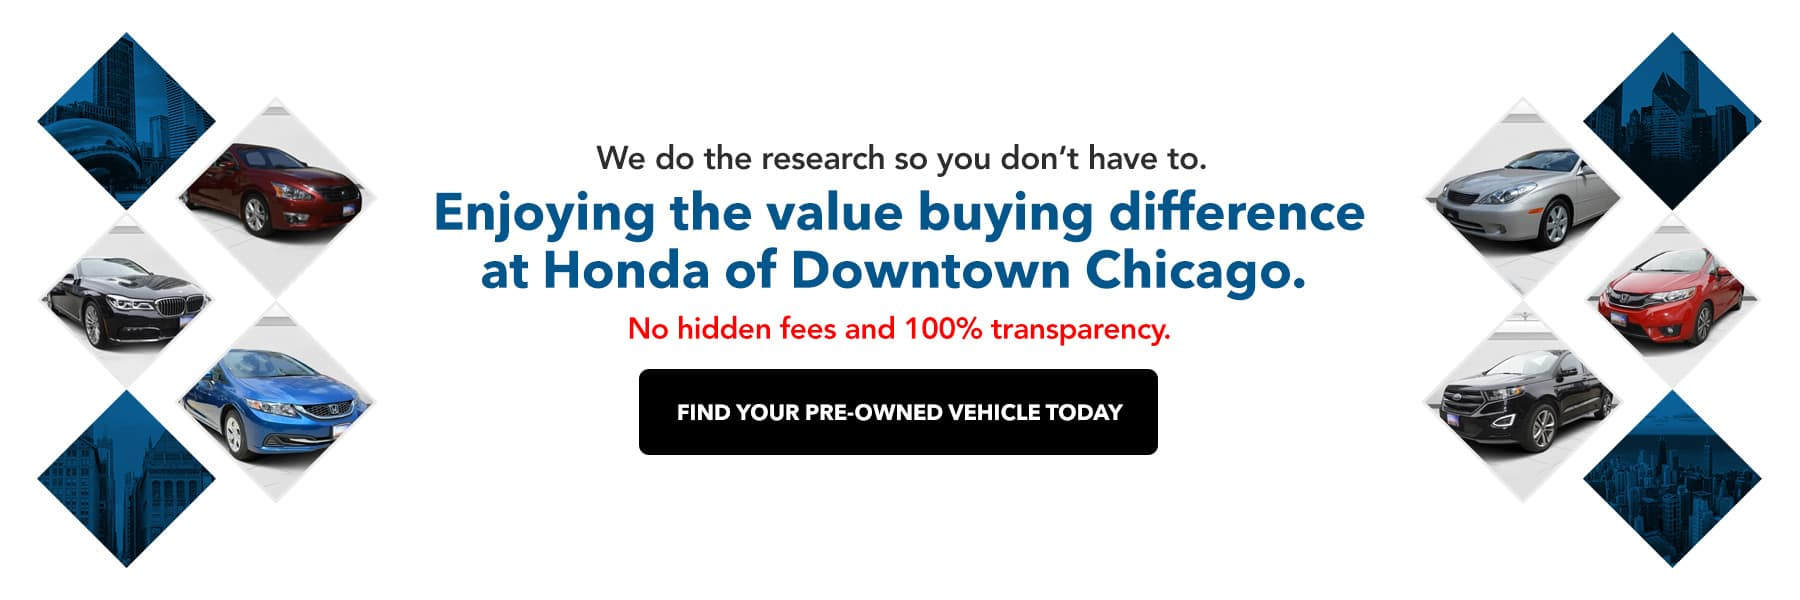 We Do The Research So You Donu0027t Have To. , At Honda Of